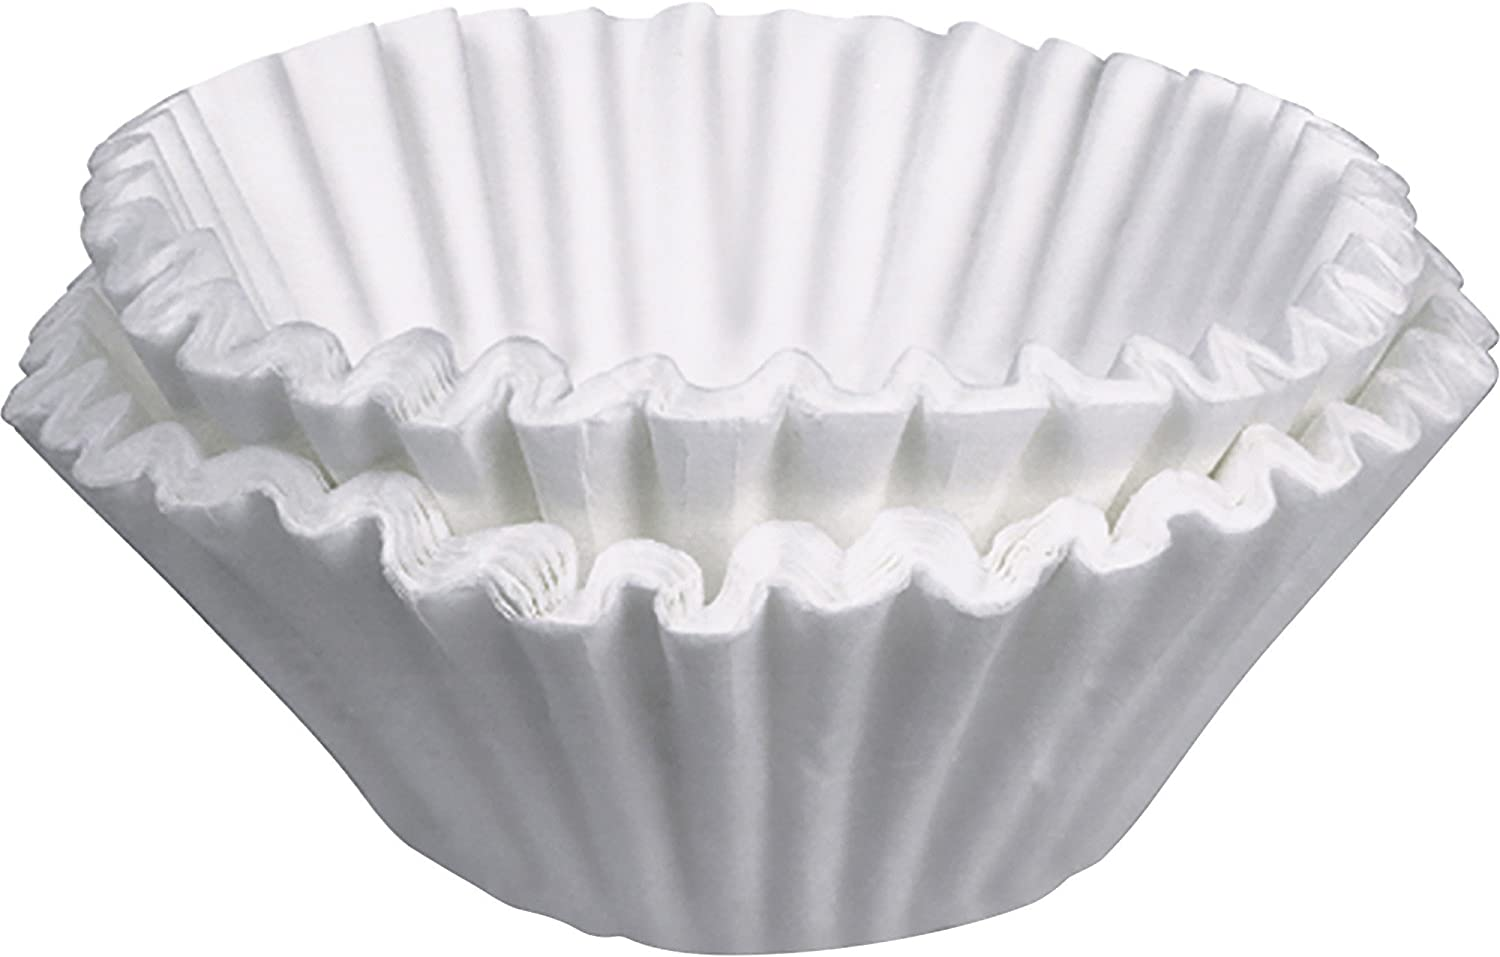 BUNREGFILTER - Bunn Coffee Regular Sale Filter Today's only